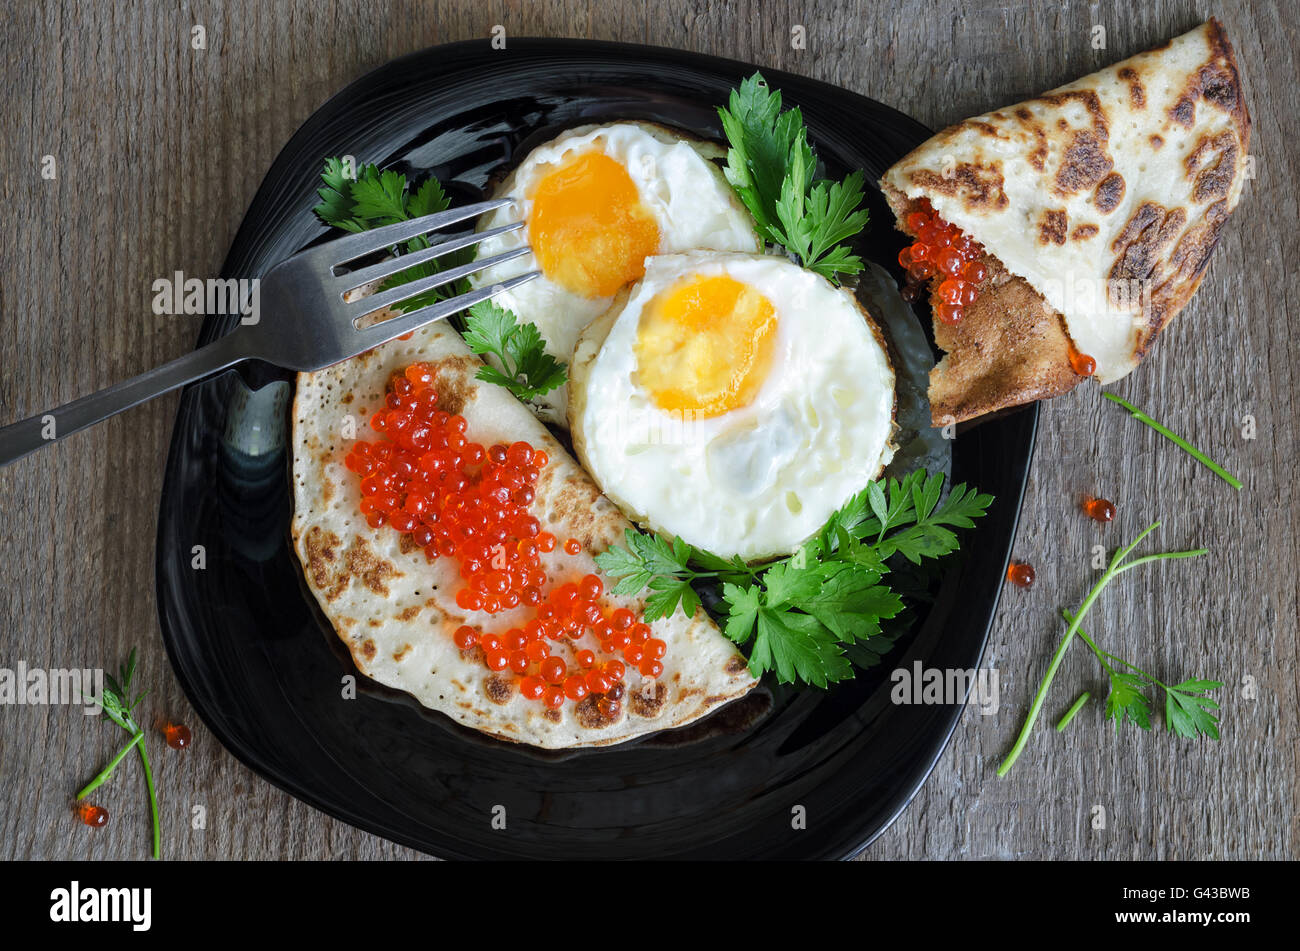 Scrambled eggs and pancakes with caviar on a black plate - Stock Image